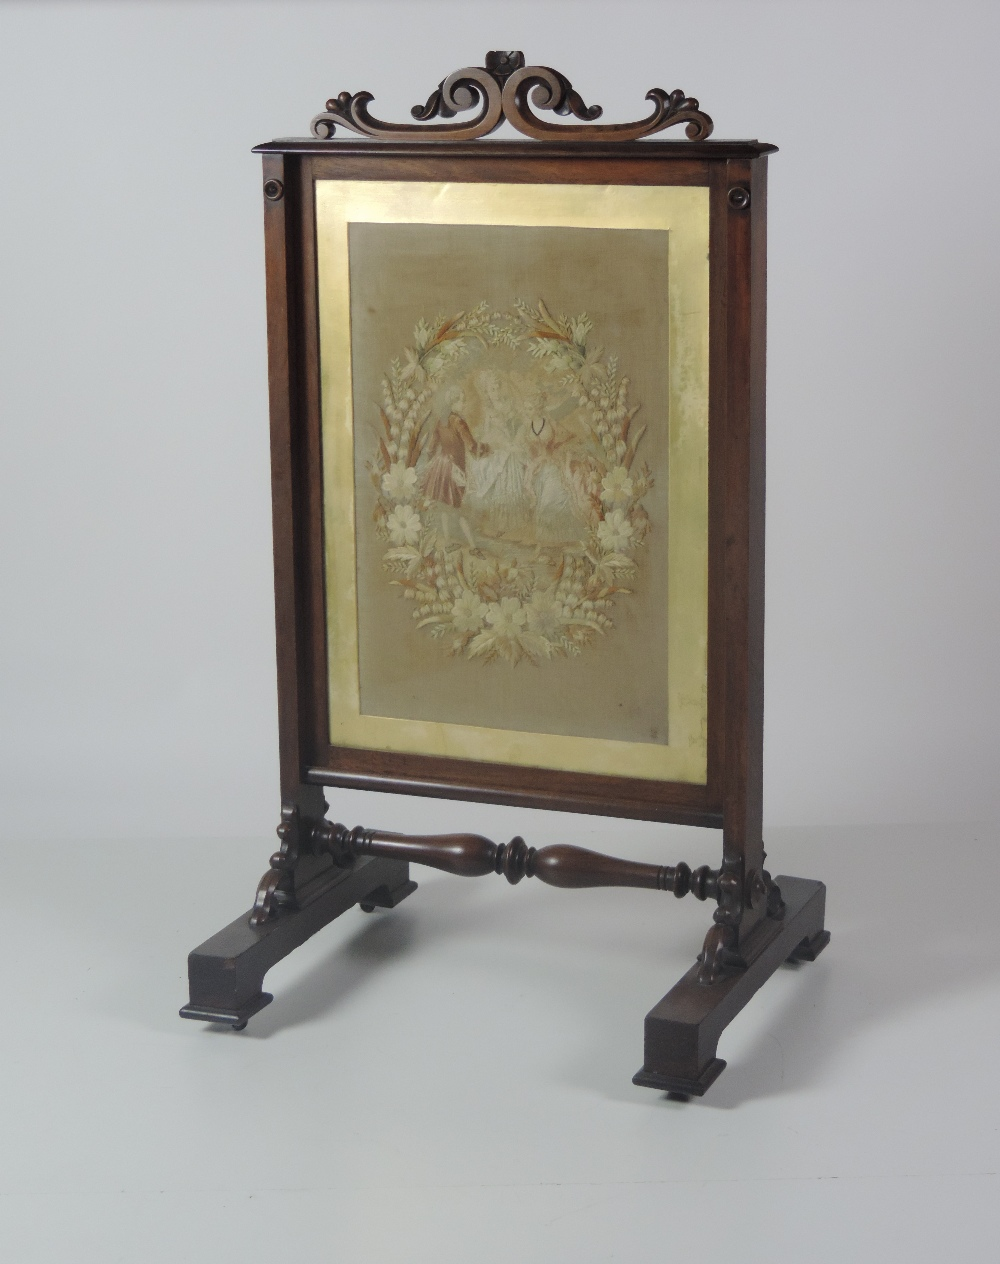 Lot 60 - A good quality heavy William IV period carved rosewood Fire Screen,